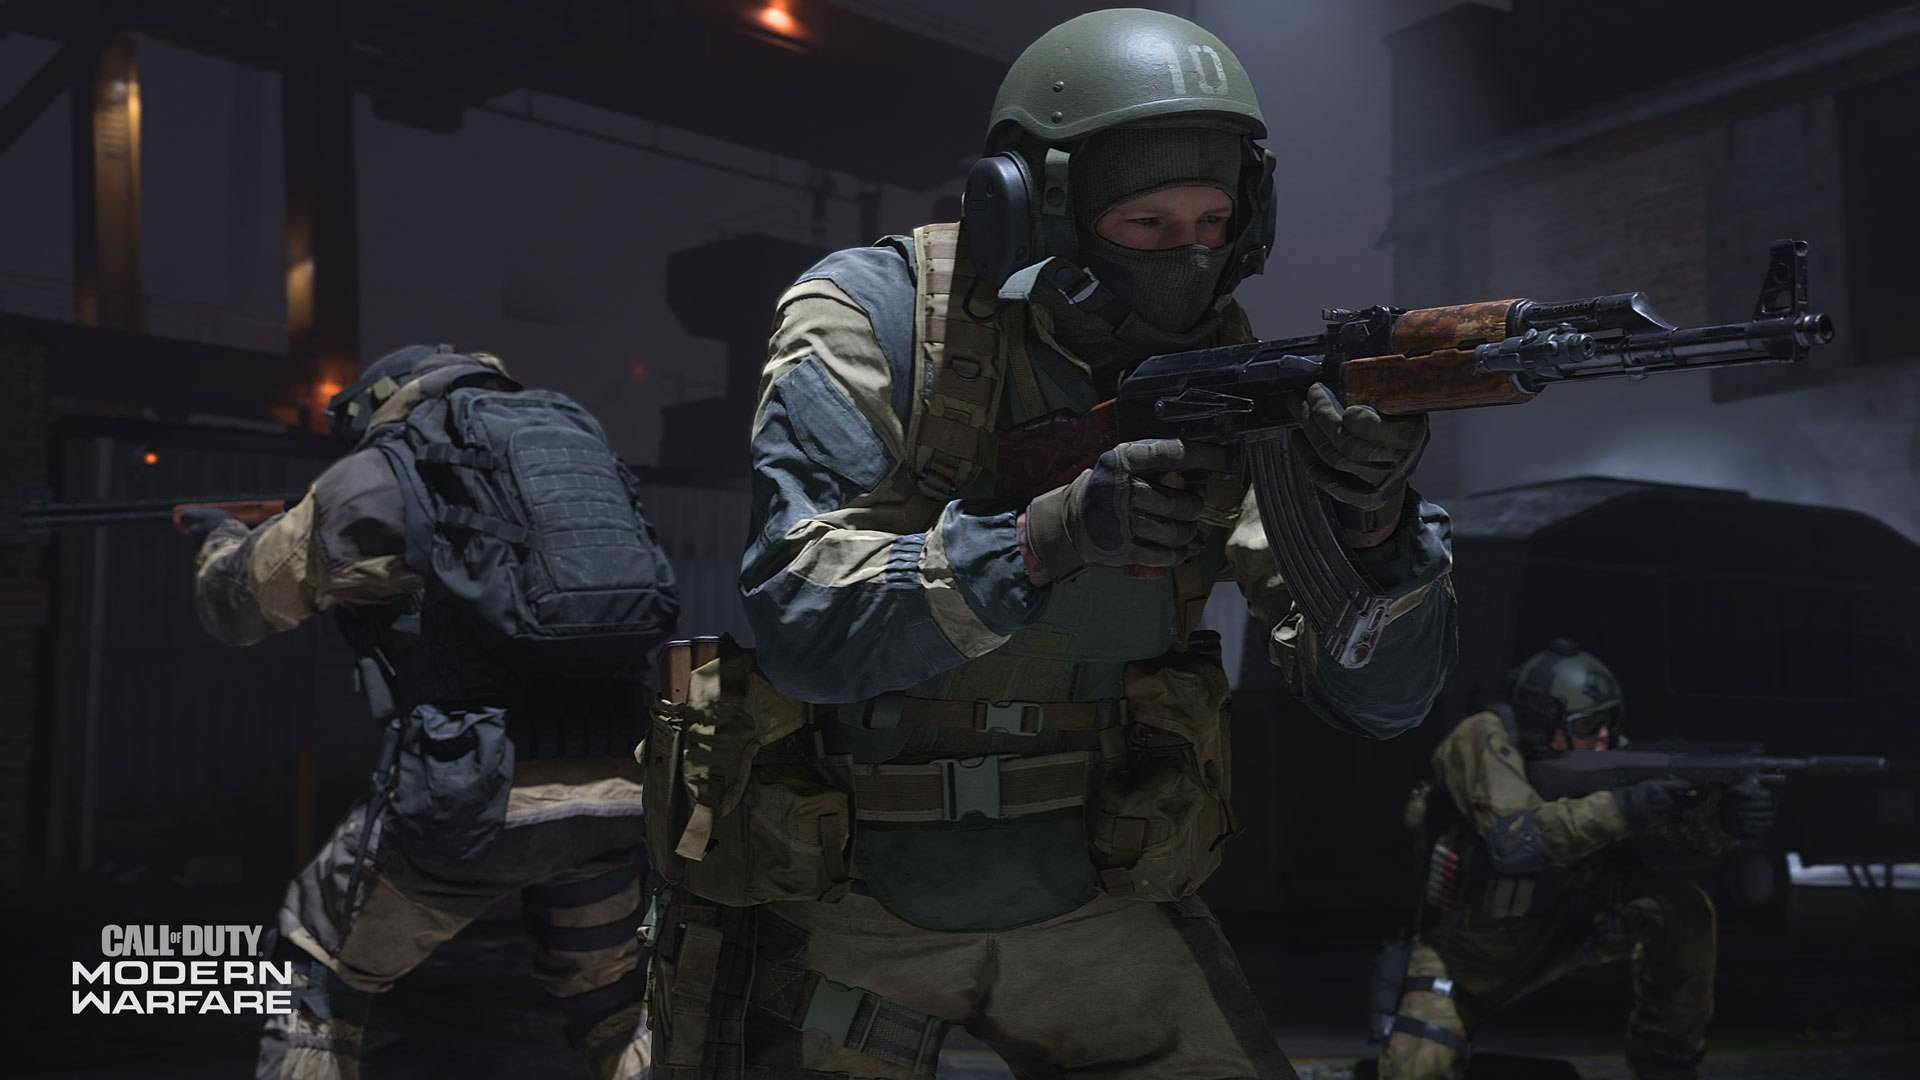 Call Of Duty Modern Warfare Season 5 When Will It Start And Details On Map Changes Modes And Battle Pass Finance Rewind